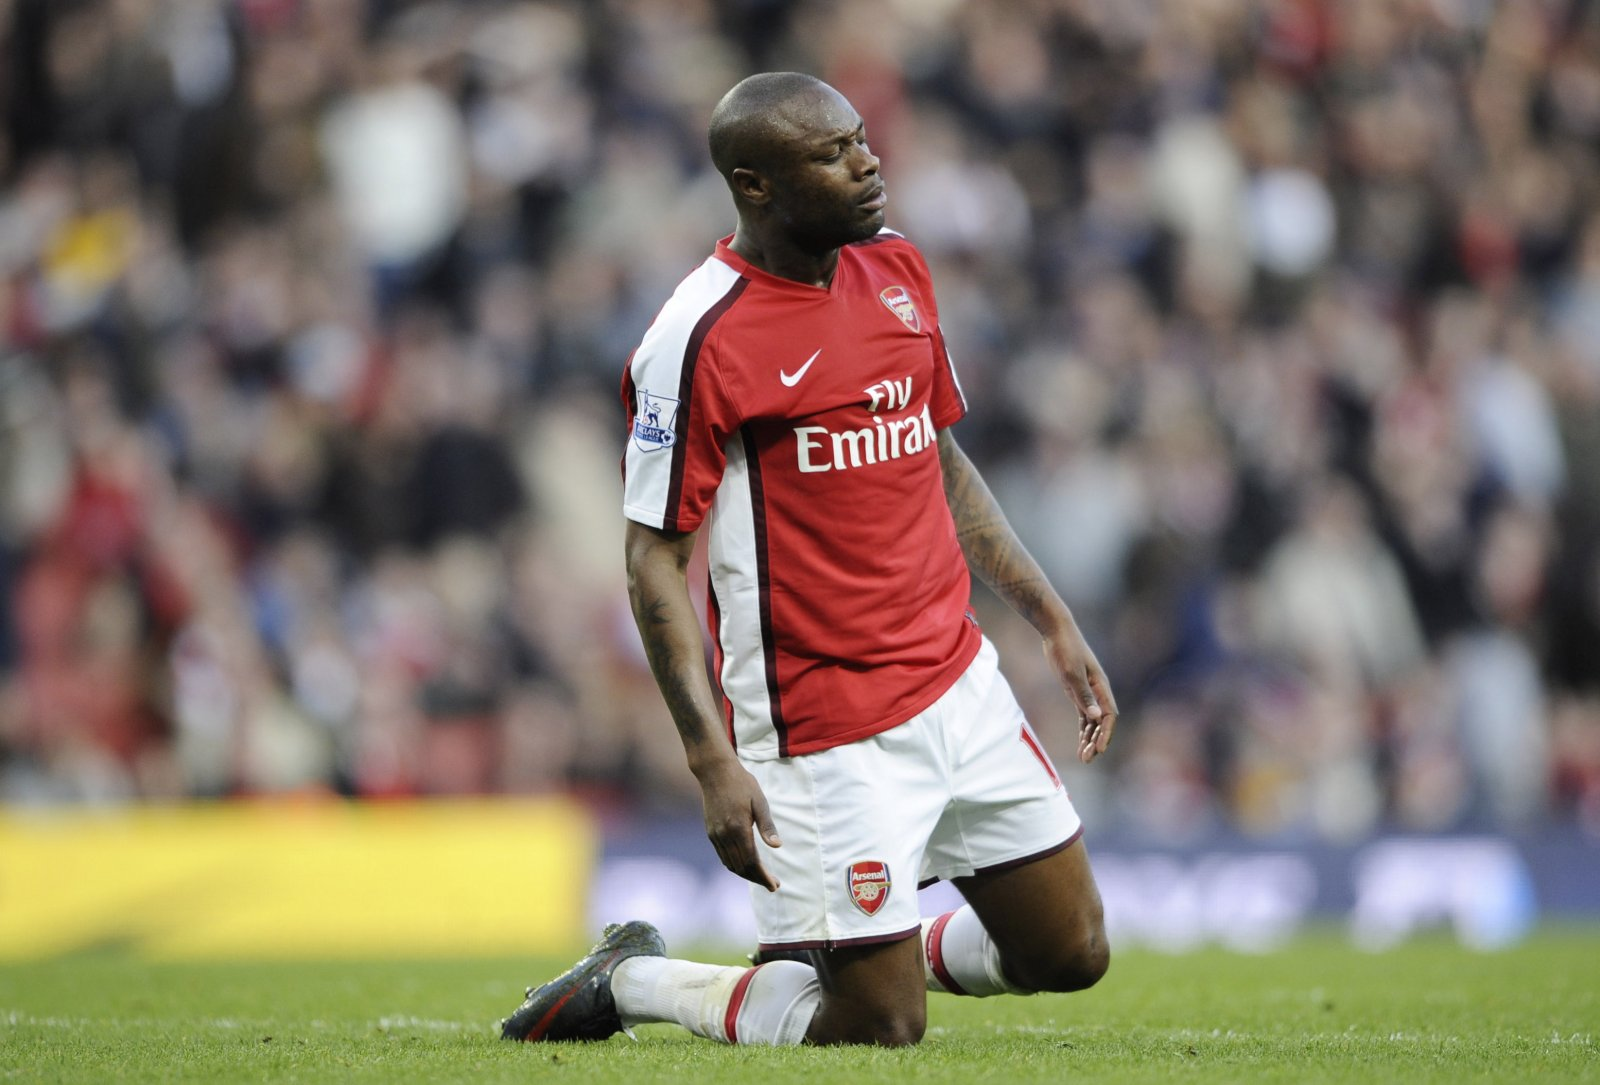 Transfers that ruined careers: William Gallas to Arsenal | The Transfer Tavern